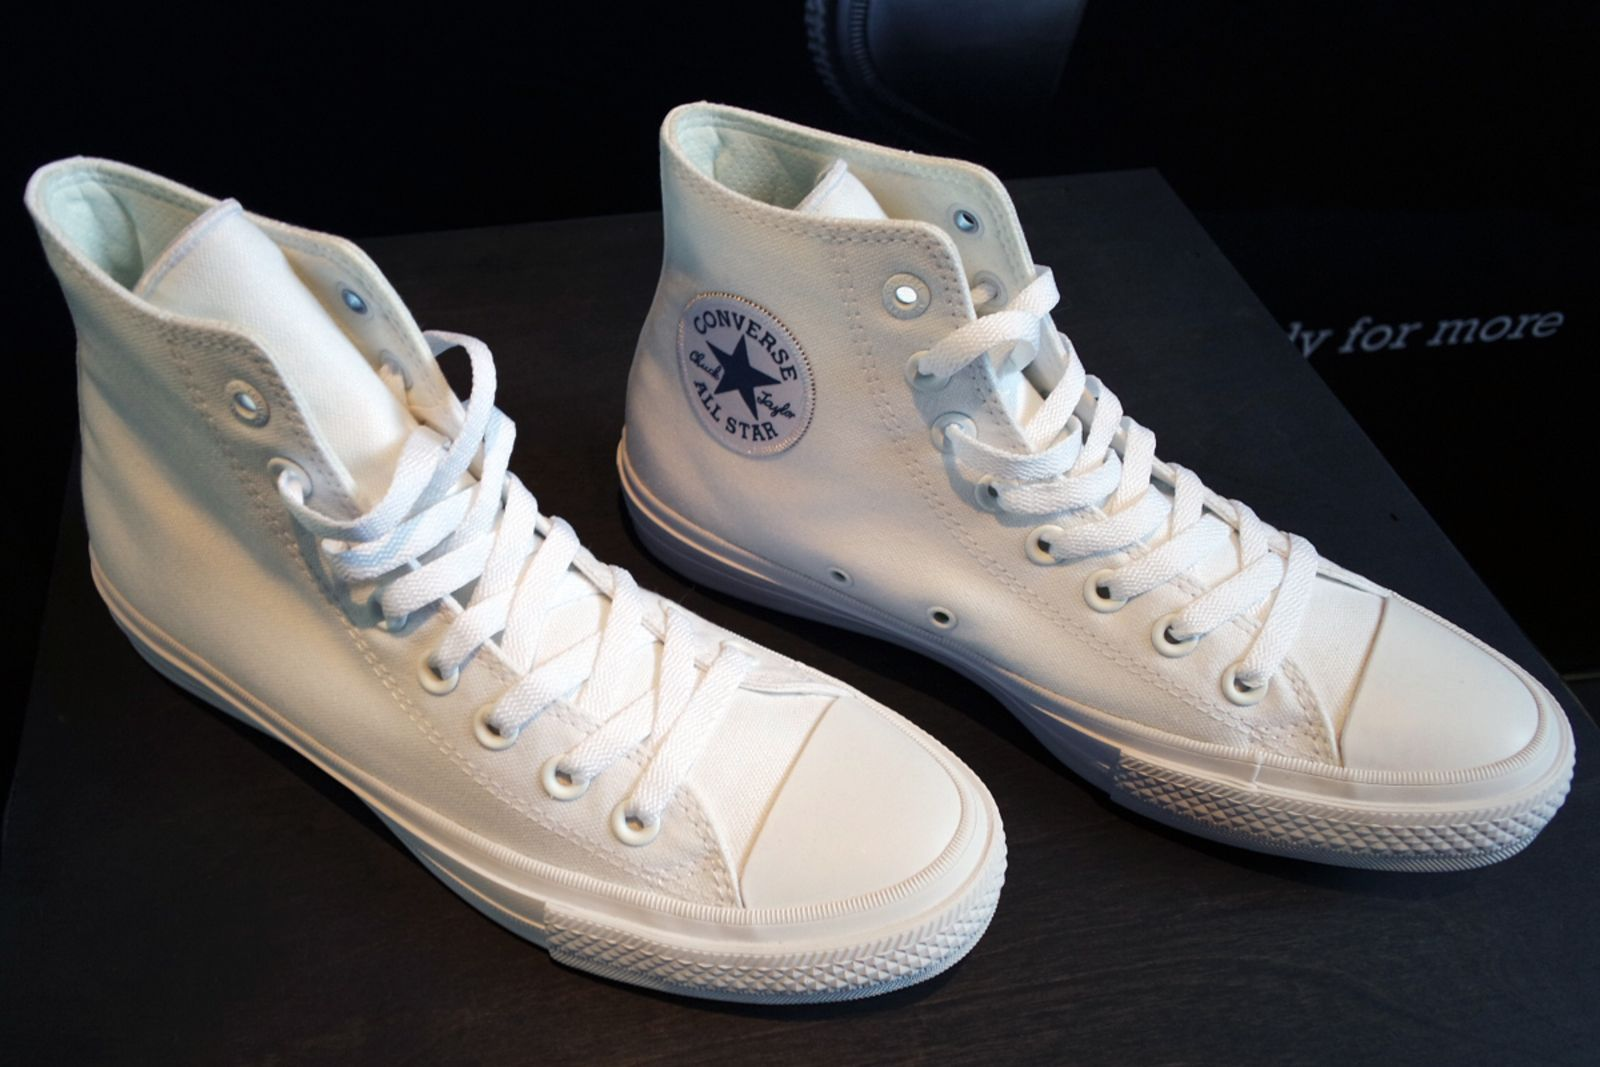 Converse Chuck Taylor All Star Hi Men's Low-Top Sneakers